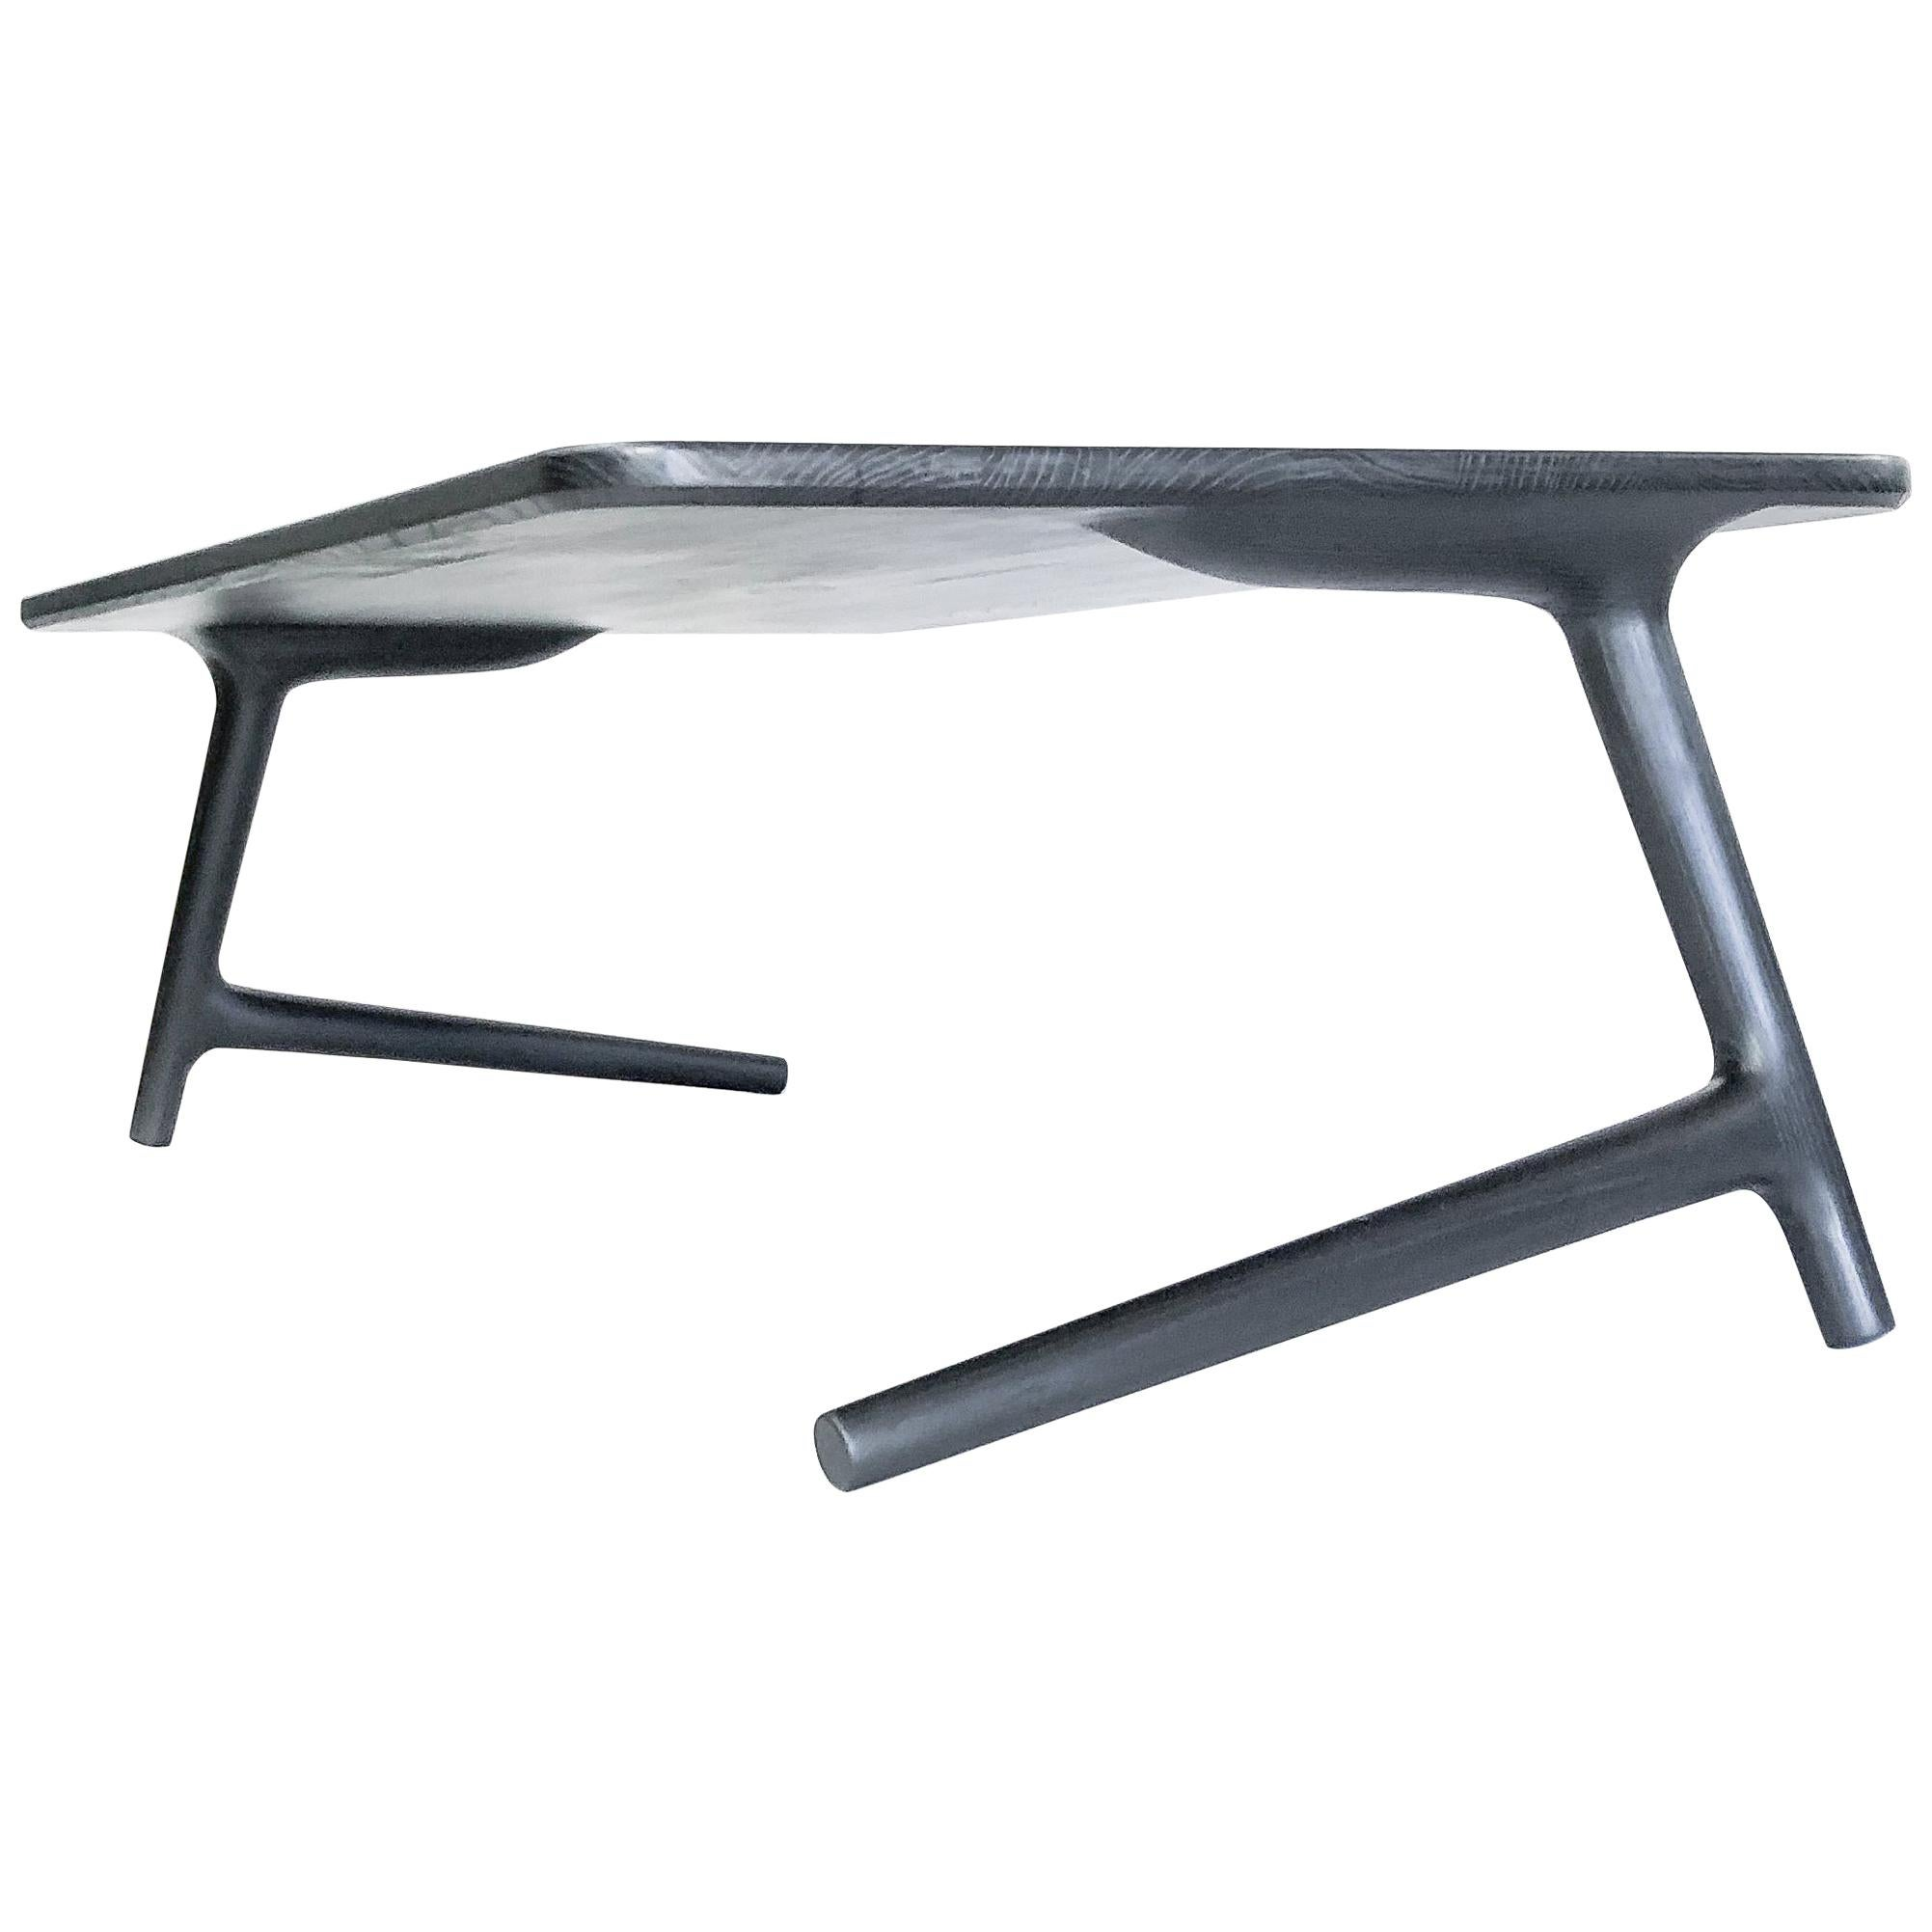 Coffee Table, Charcoal Ash Wood - Designed and Produced by Fernweh Woodworking